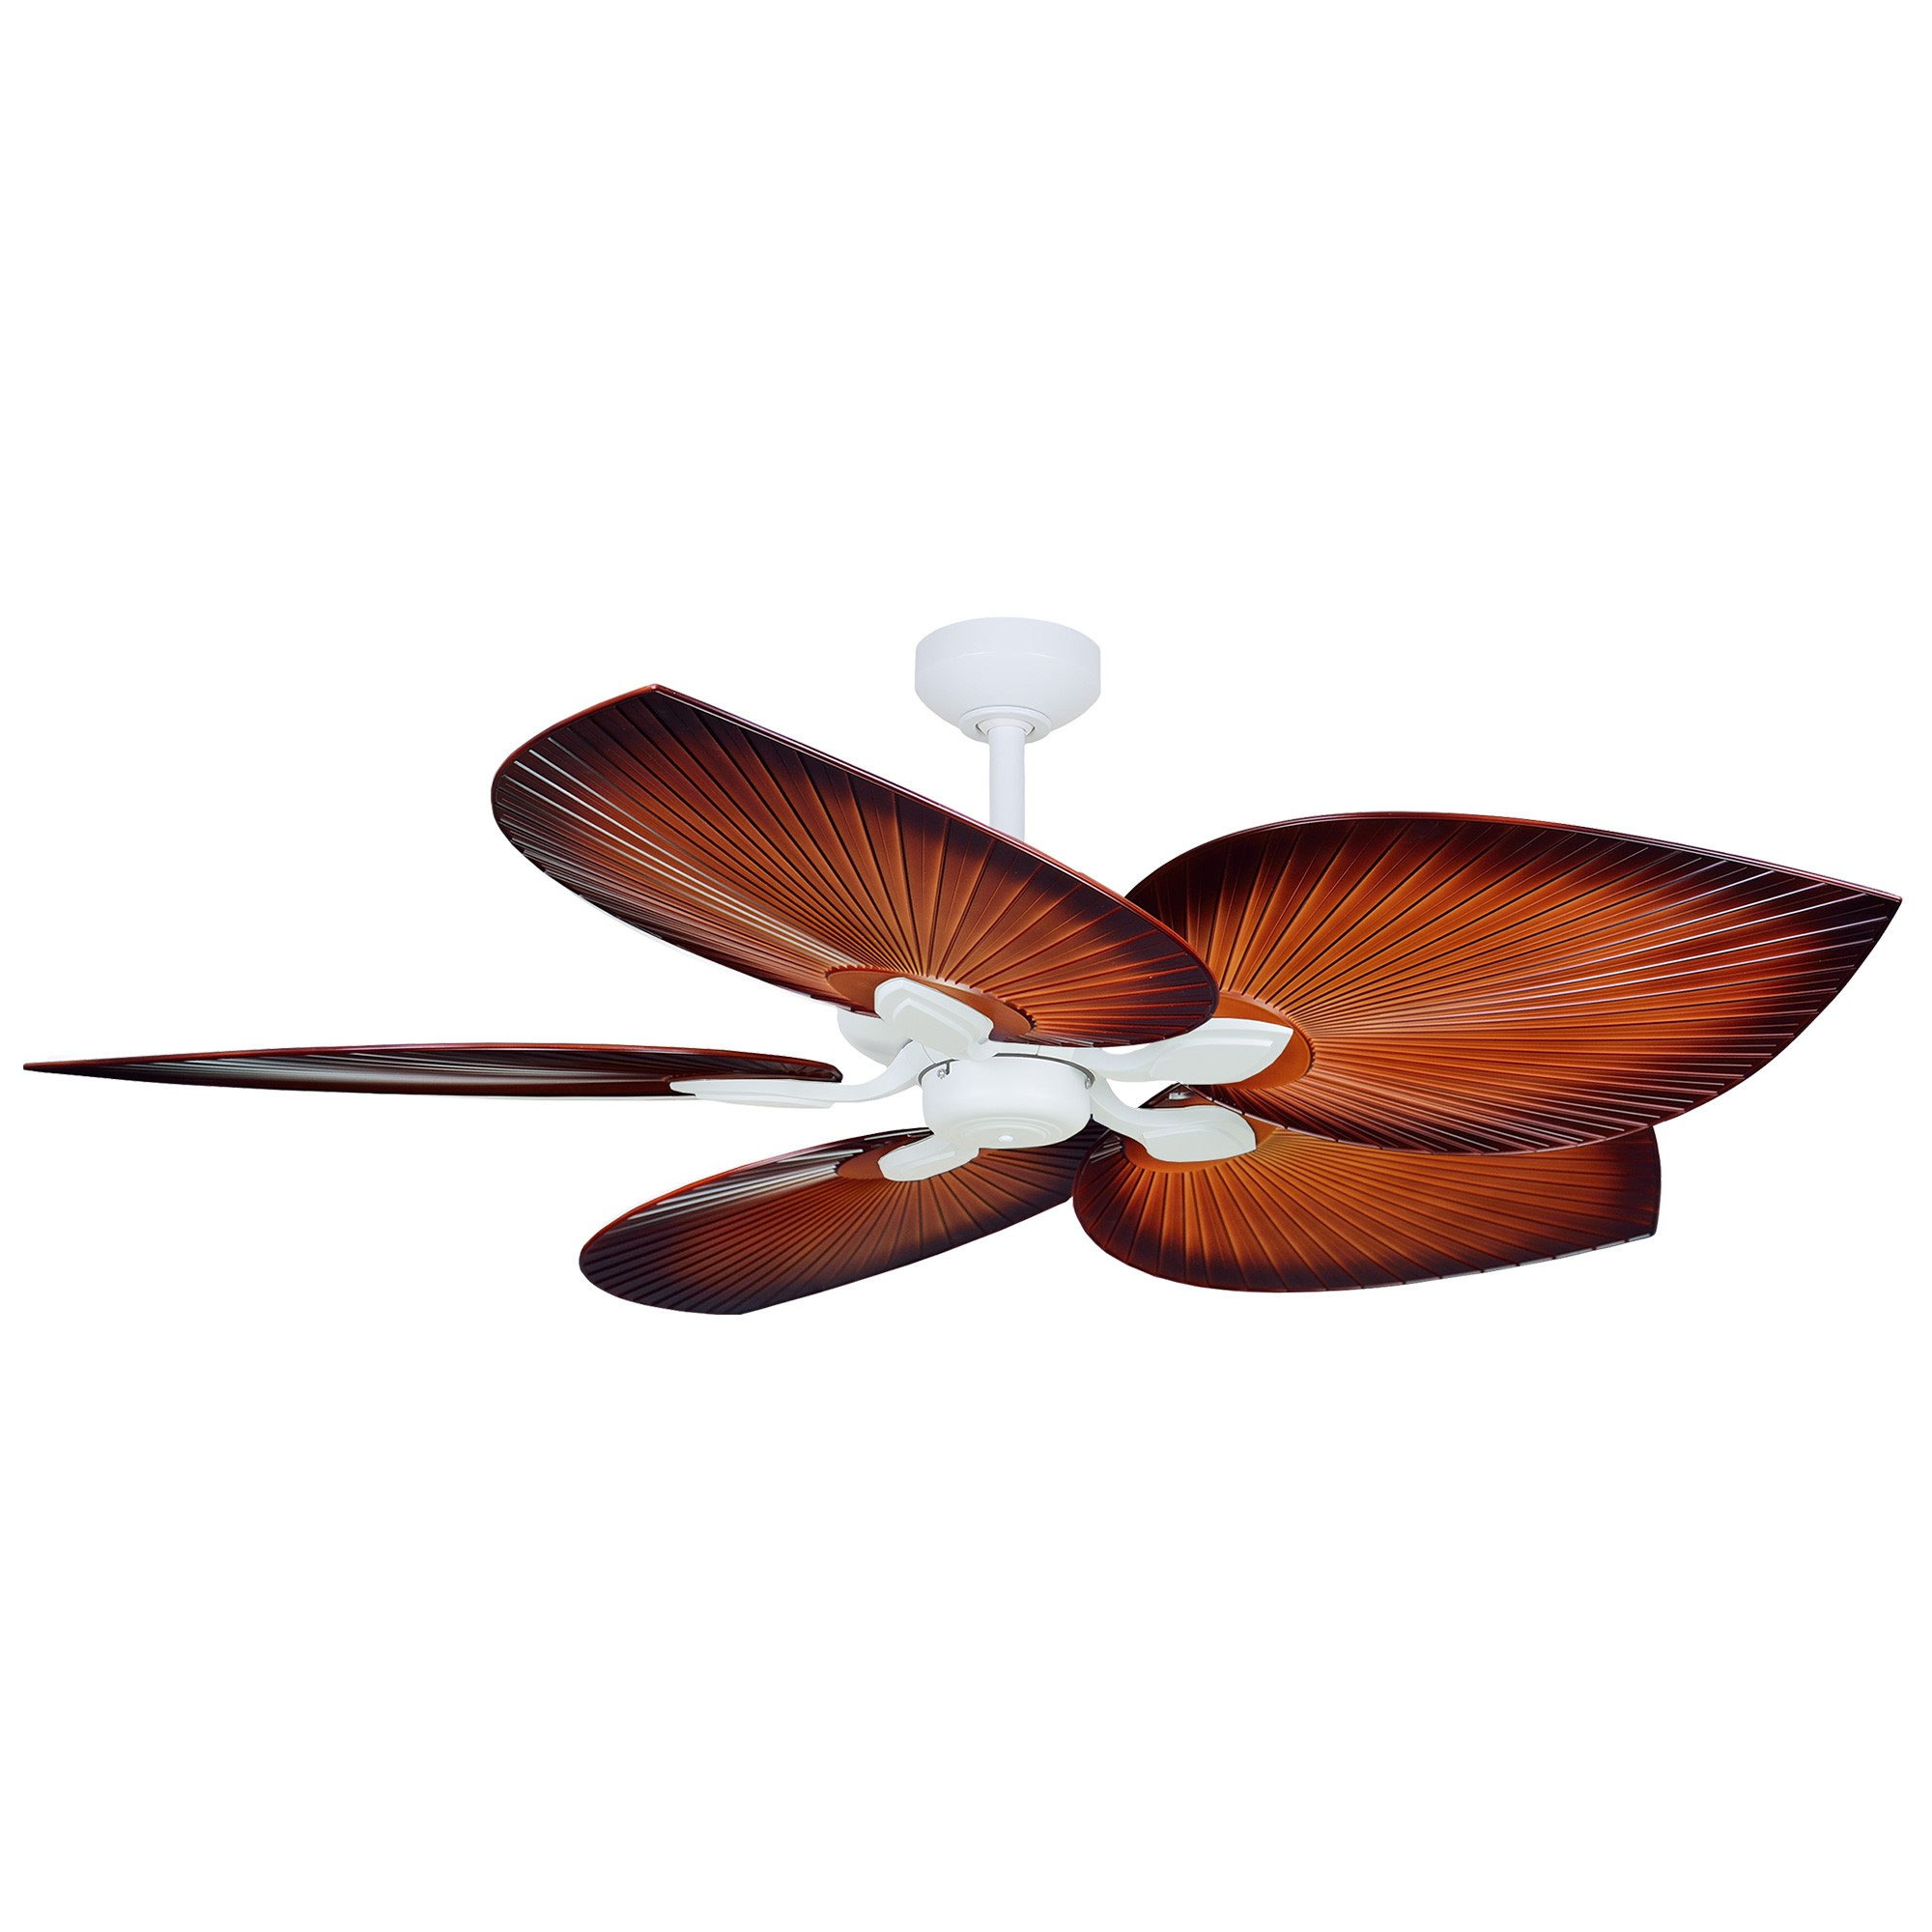 Threesixty Tropicana Commercial Grade Ceiling Fan, 138cm/54